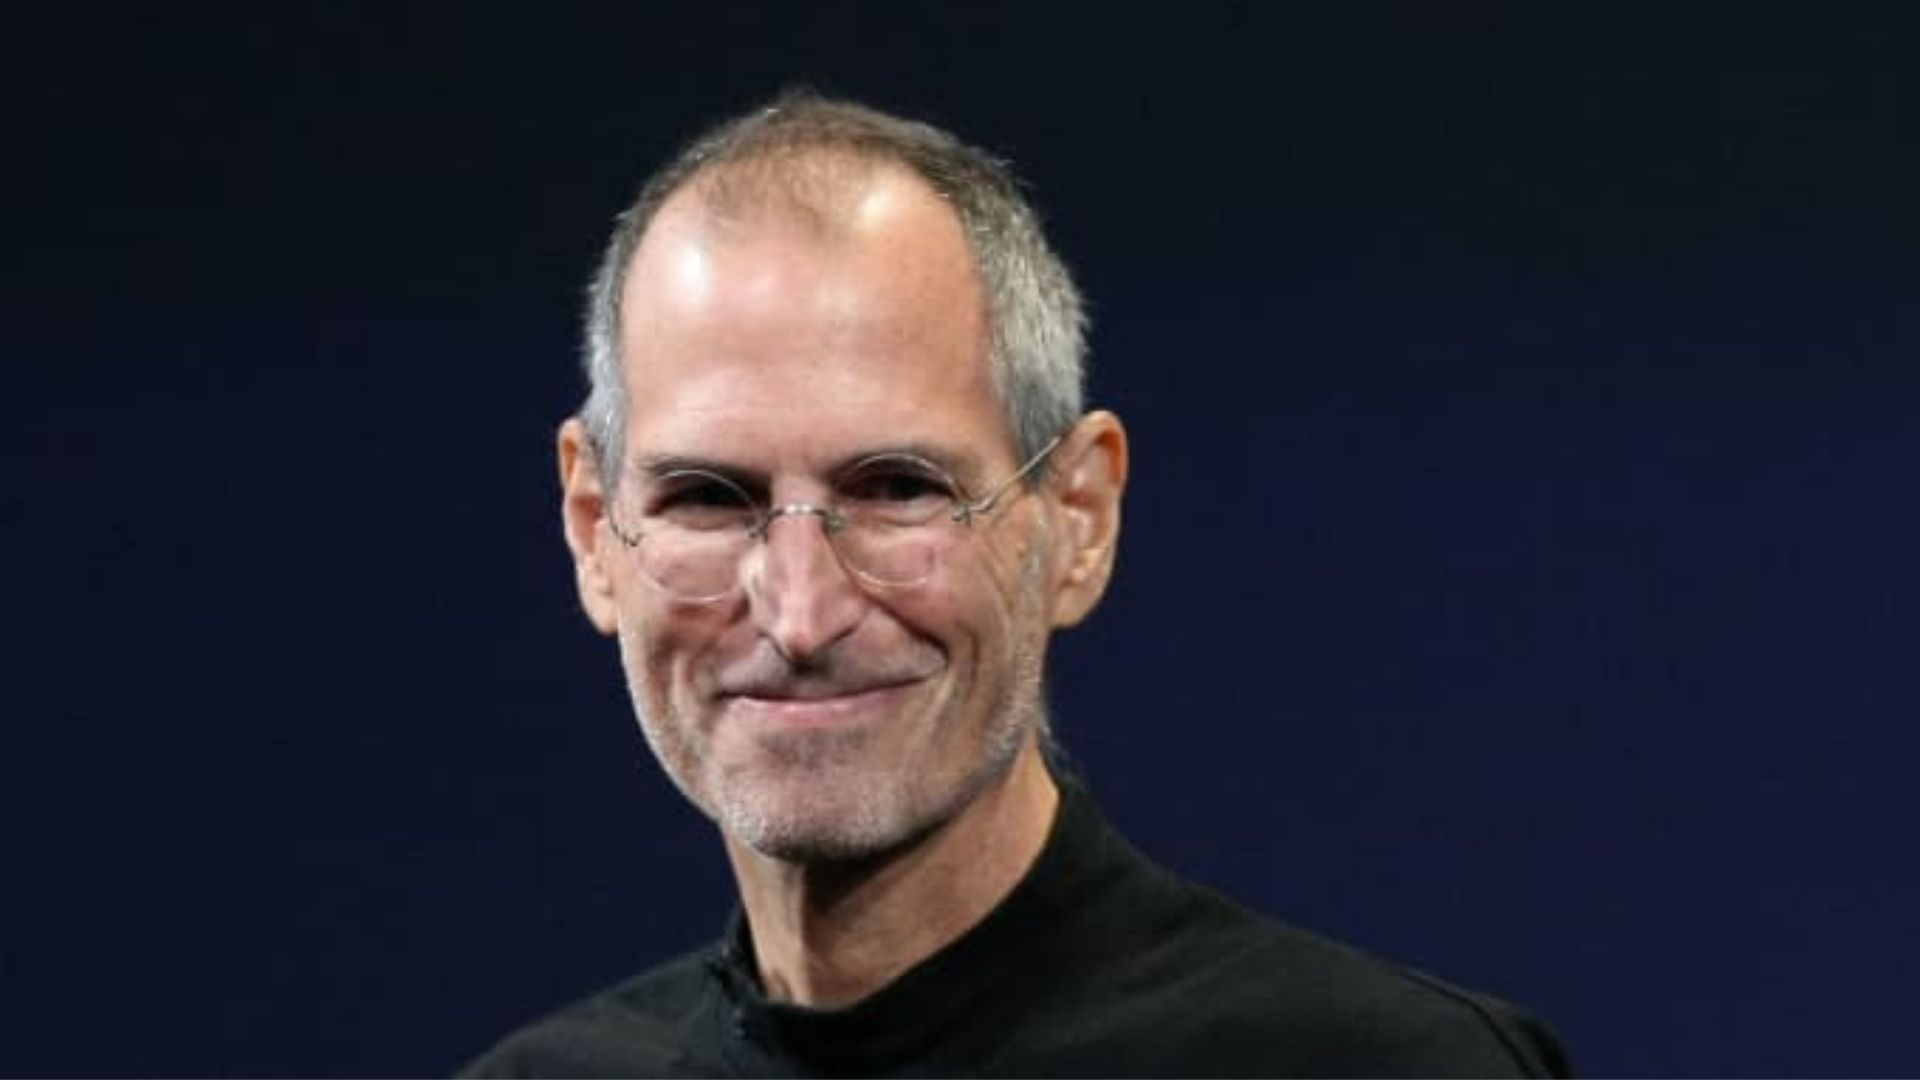 Best Steve Jobs Top 10 Rules What company he made?